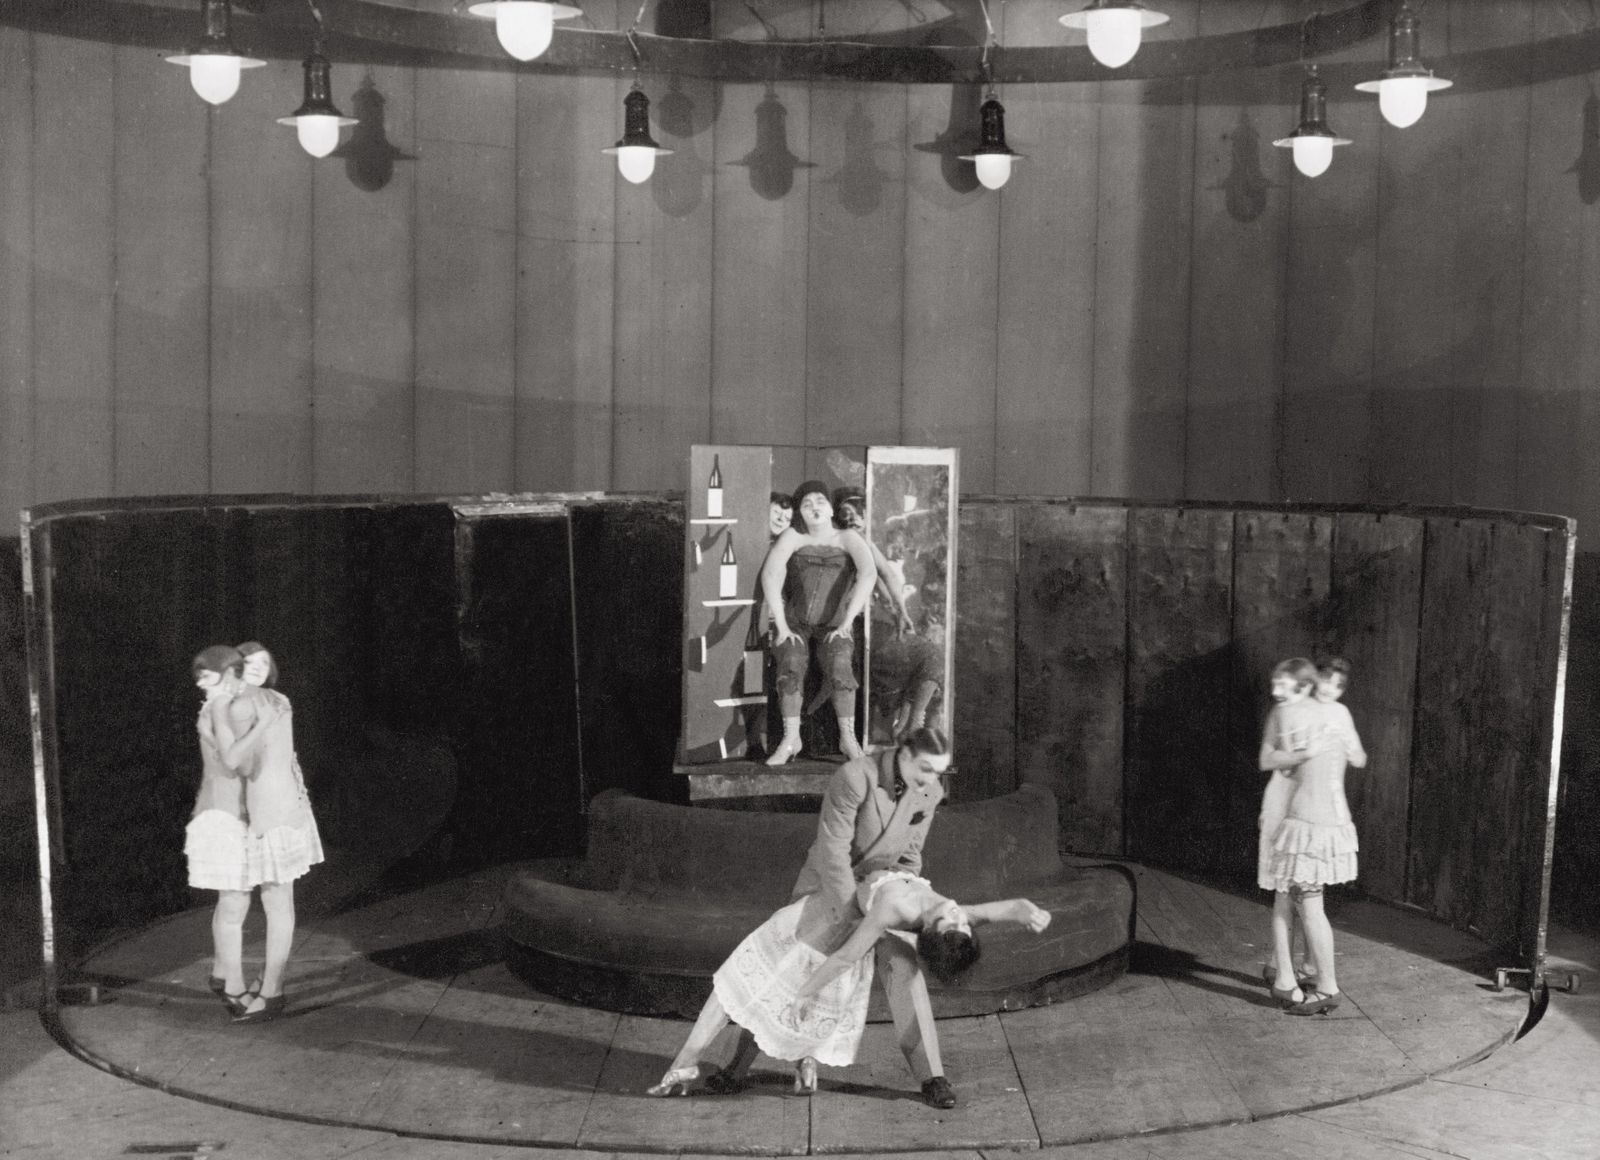 The Threepenny Opera by Bertolt Brecht and Kurt Weill, Staatliches Kammertheater, Moscow, Photograph by Sojus-Foto, 1930